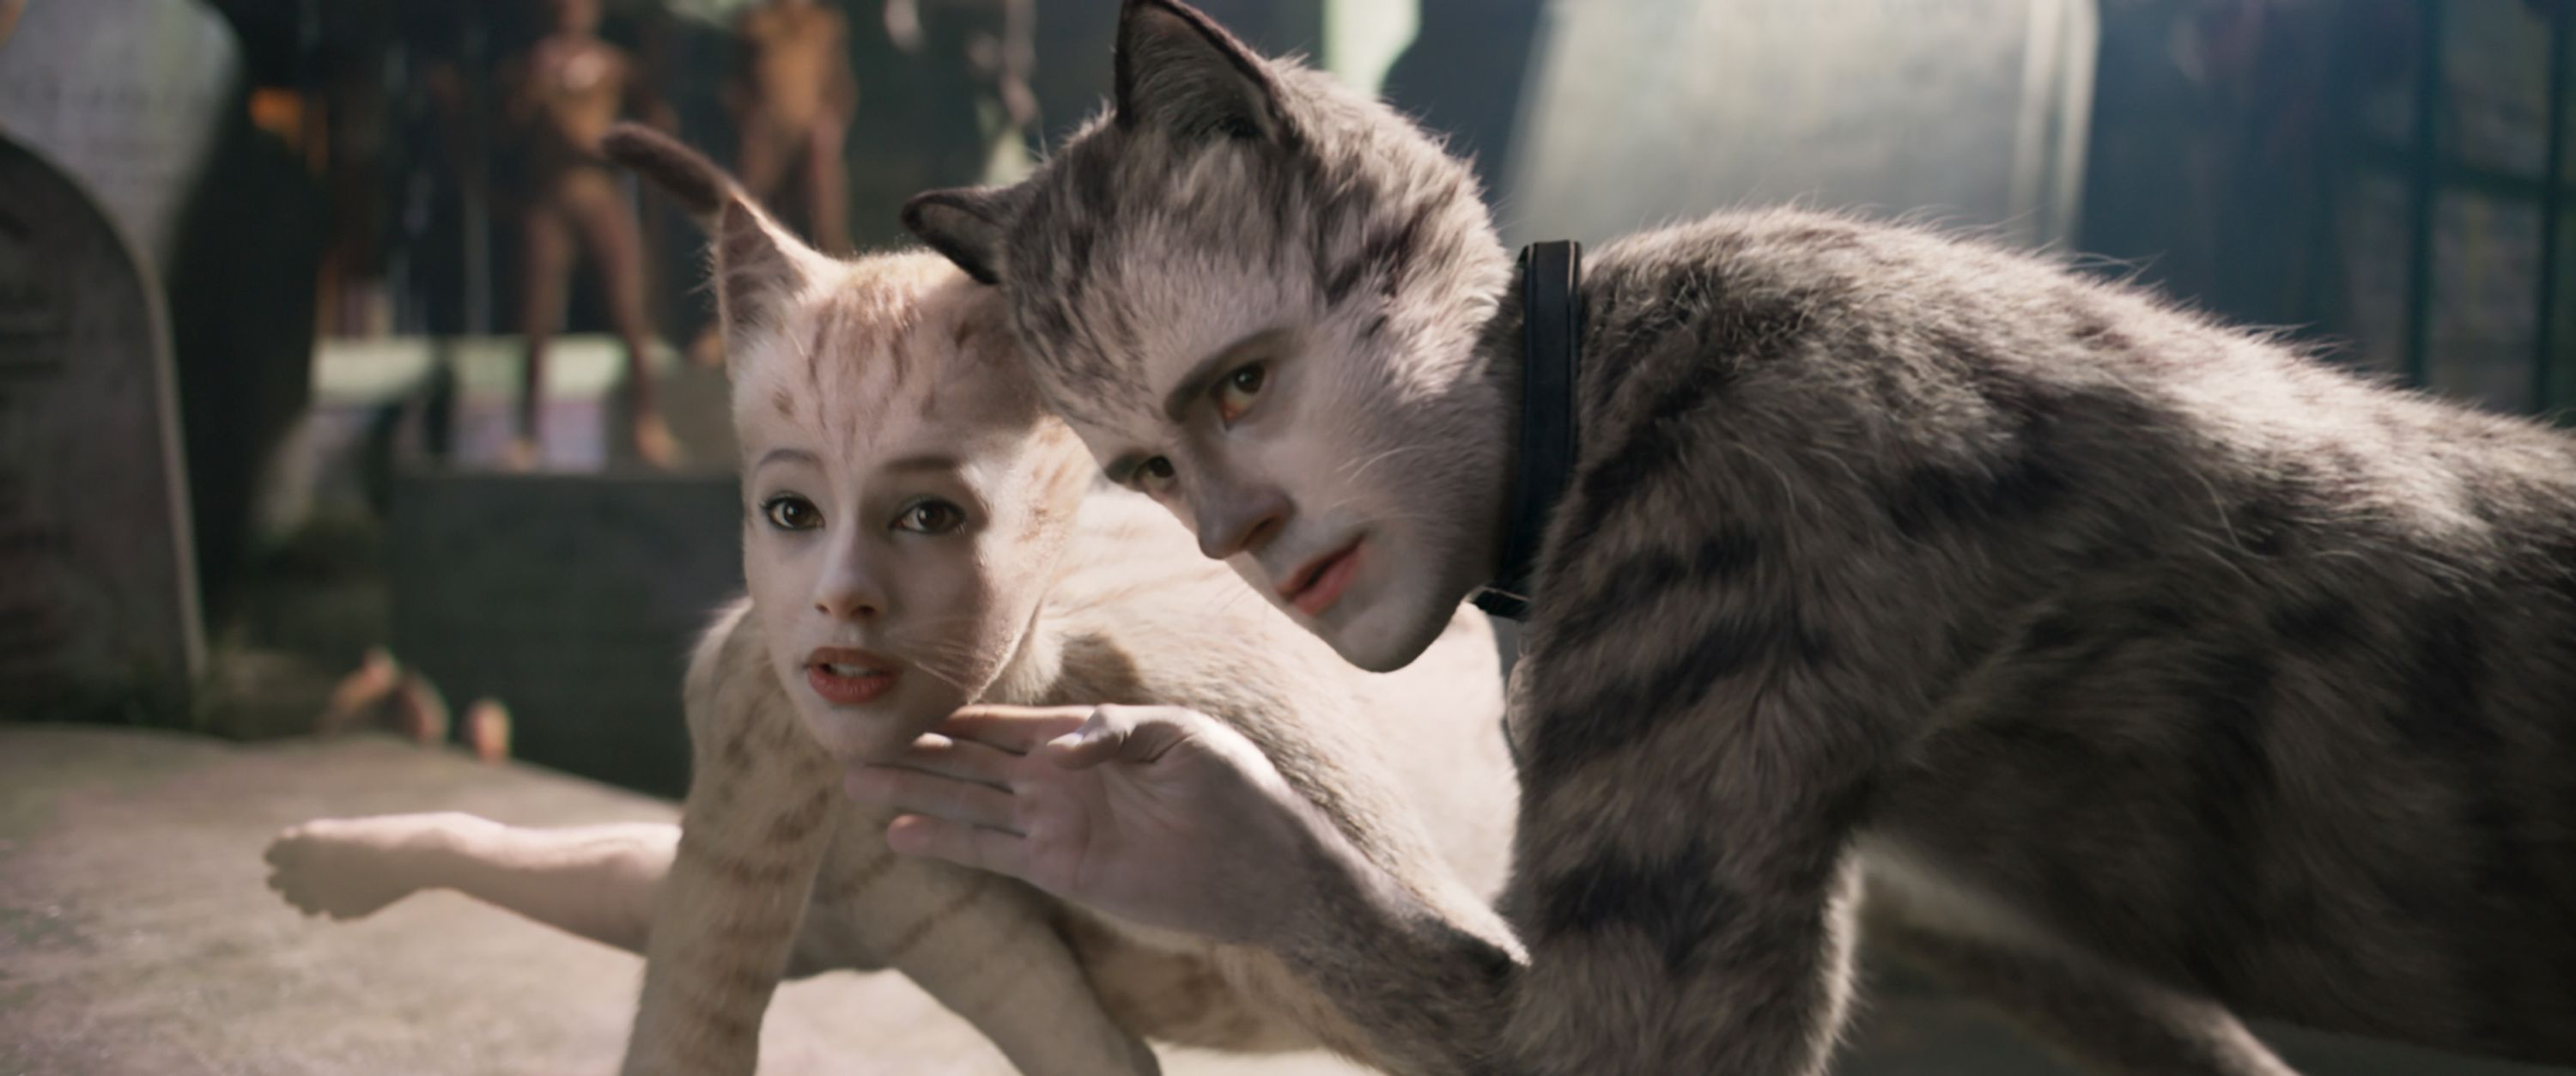 Cats is getting an updated version in cinemas with better CGI